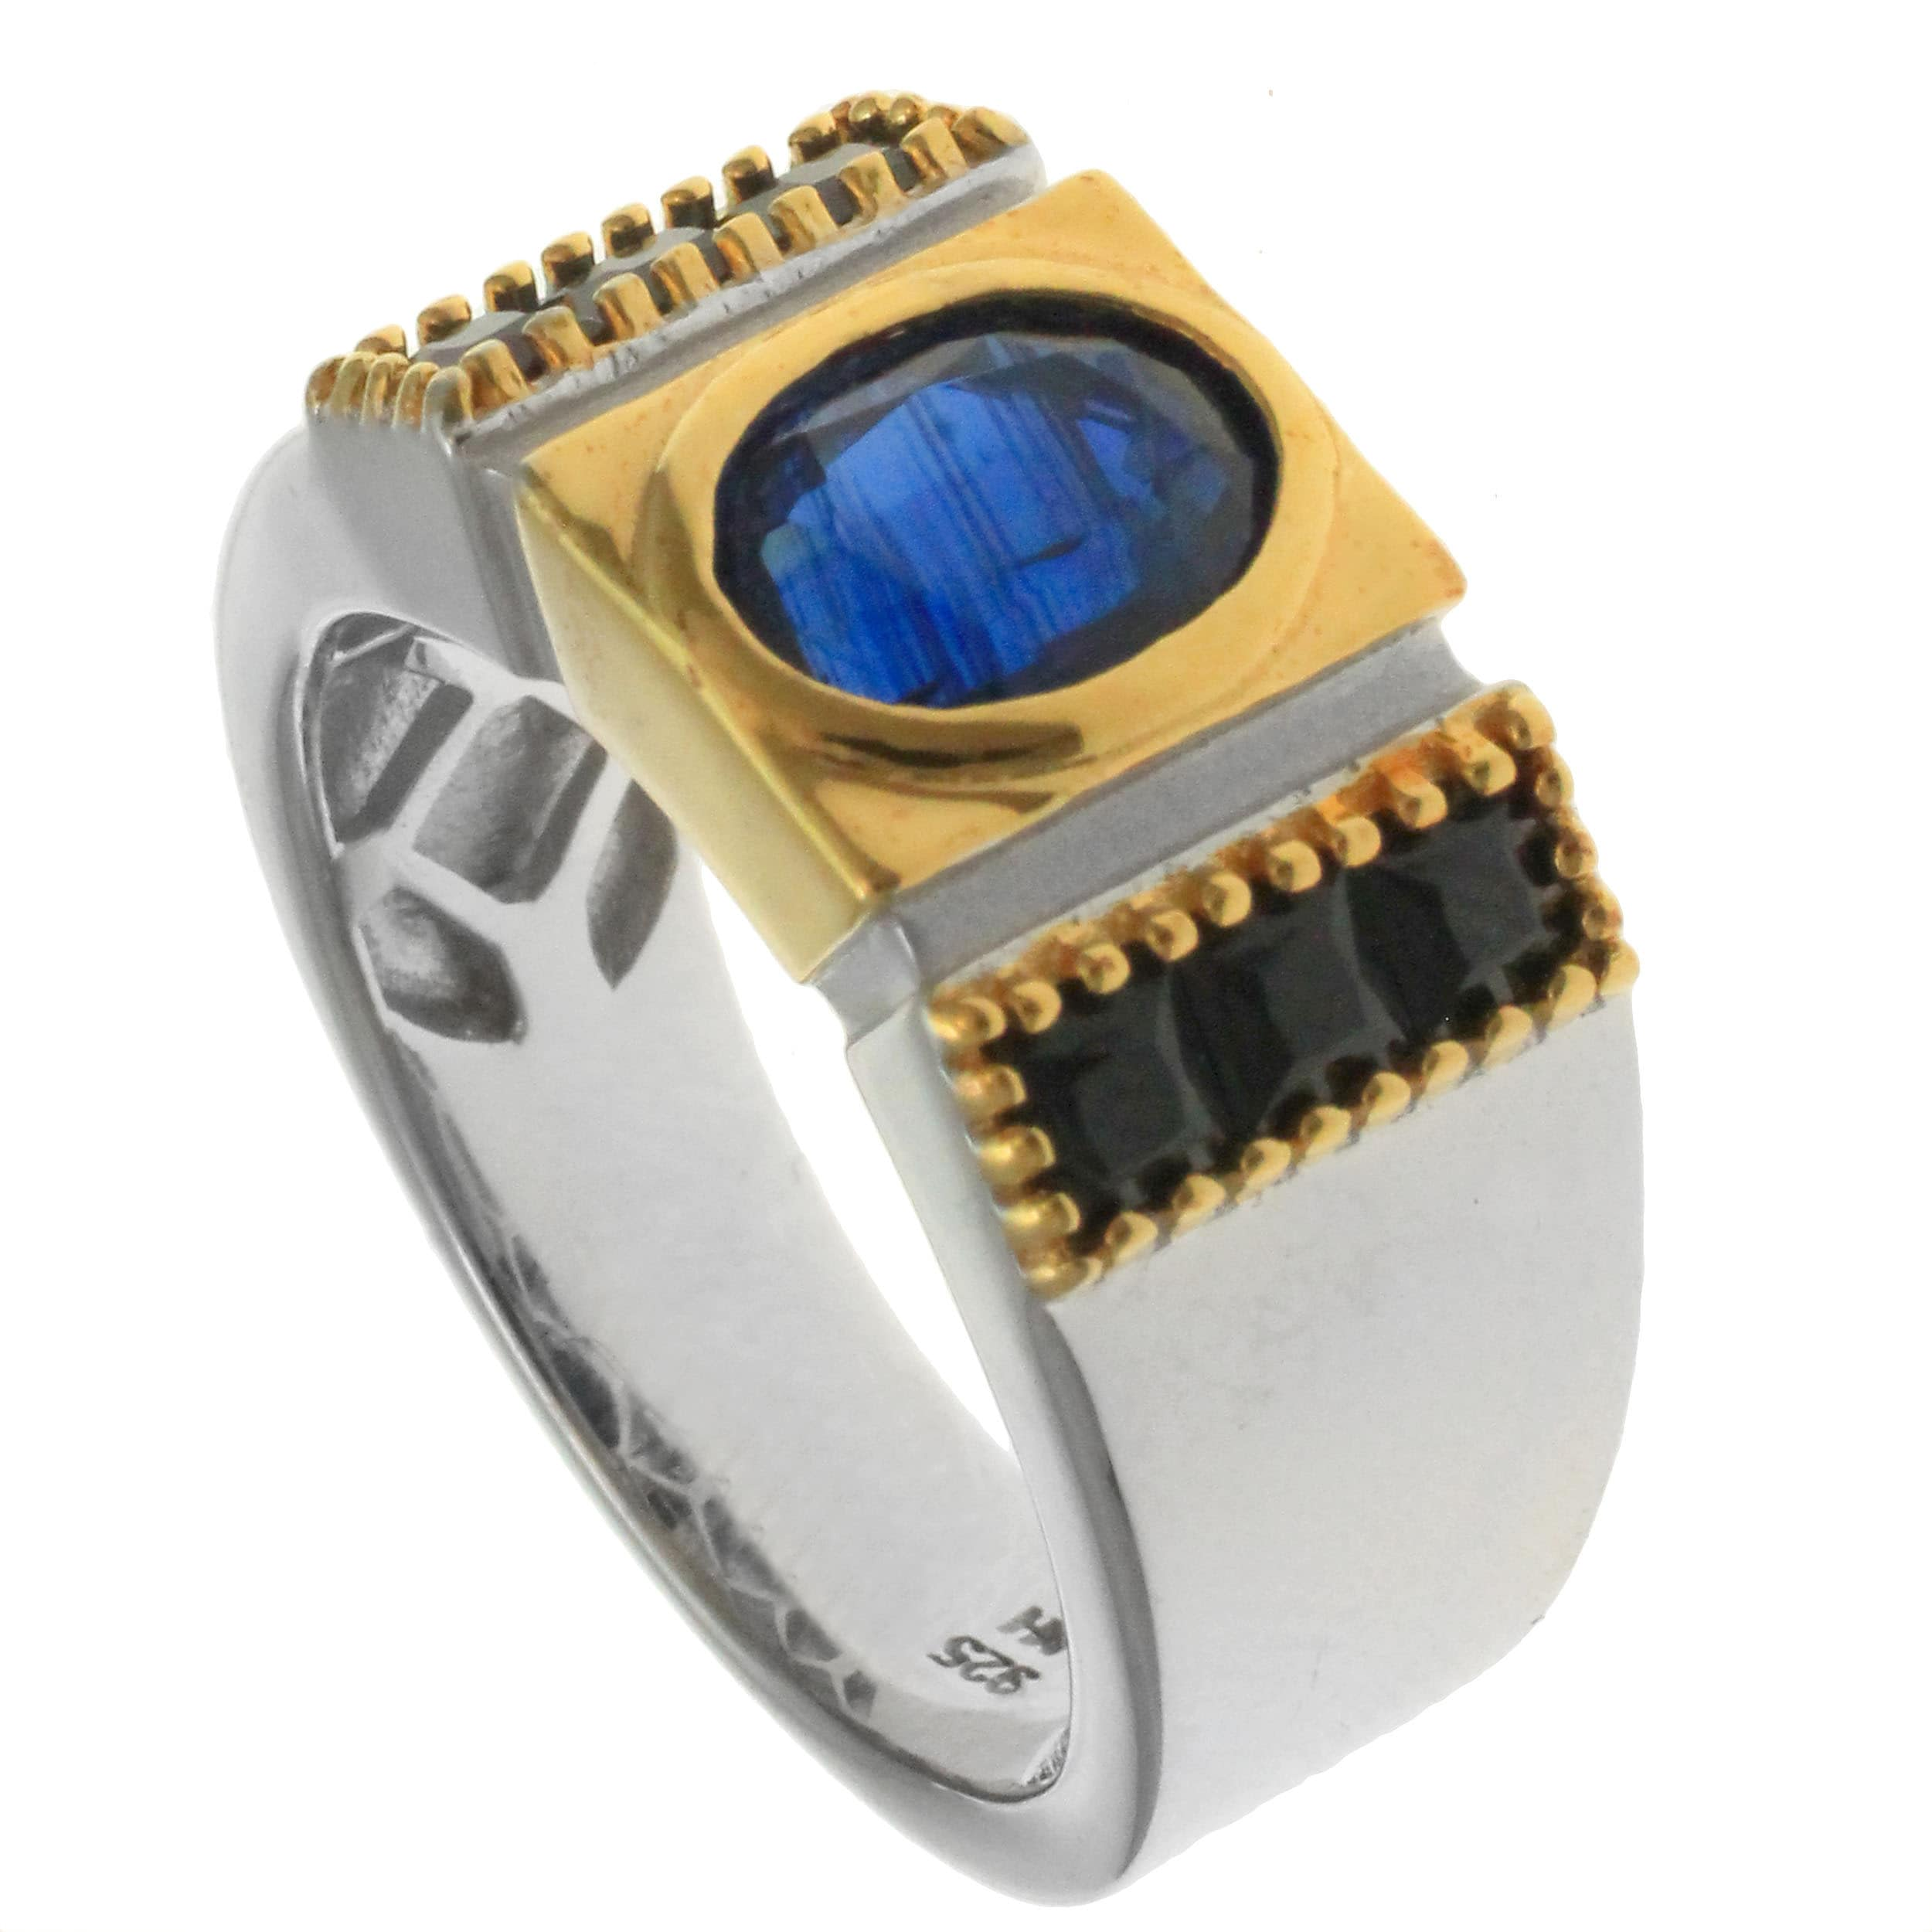 silver blue product free or menslabradorite kyanite sapphire rings labradorite and shipping ring overstock today michael jewelry mens men valitutti watches palladium slabradorite